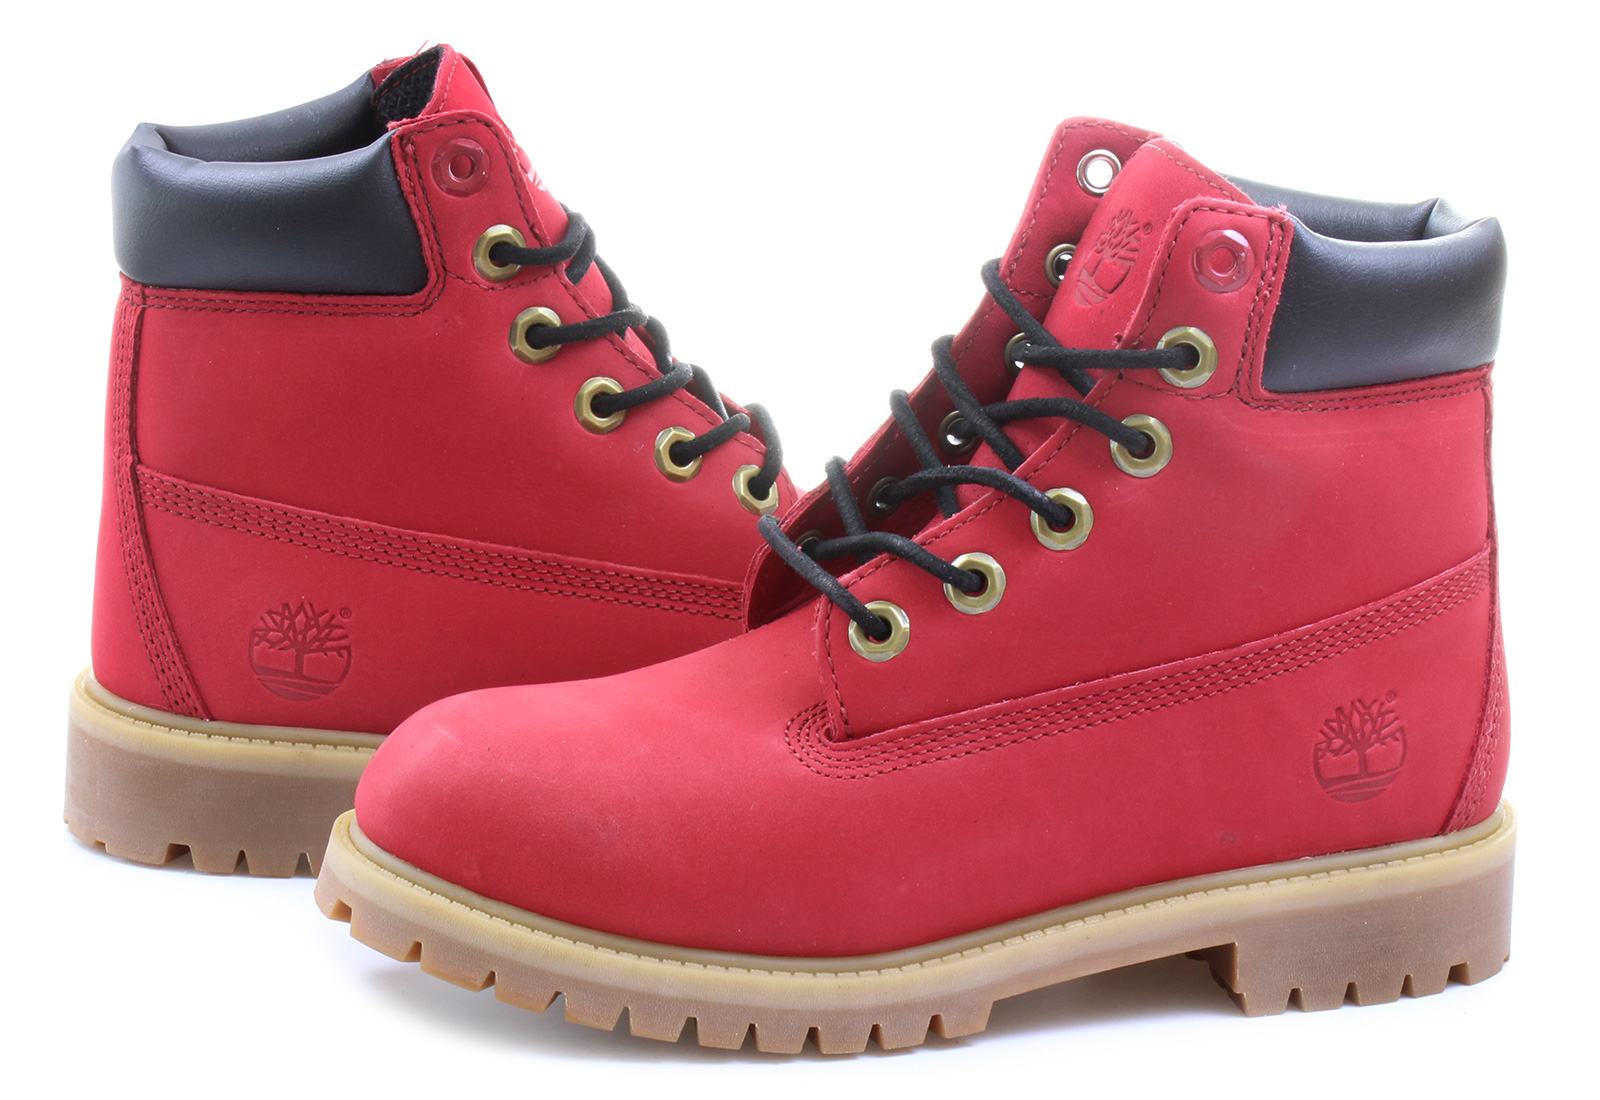 Timberland Boots 6 Inch Premium Boot Wp 6598r Red